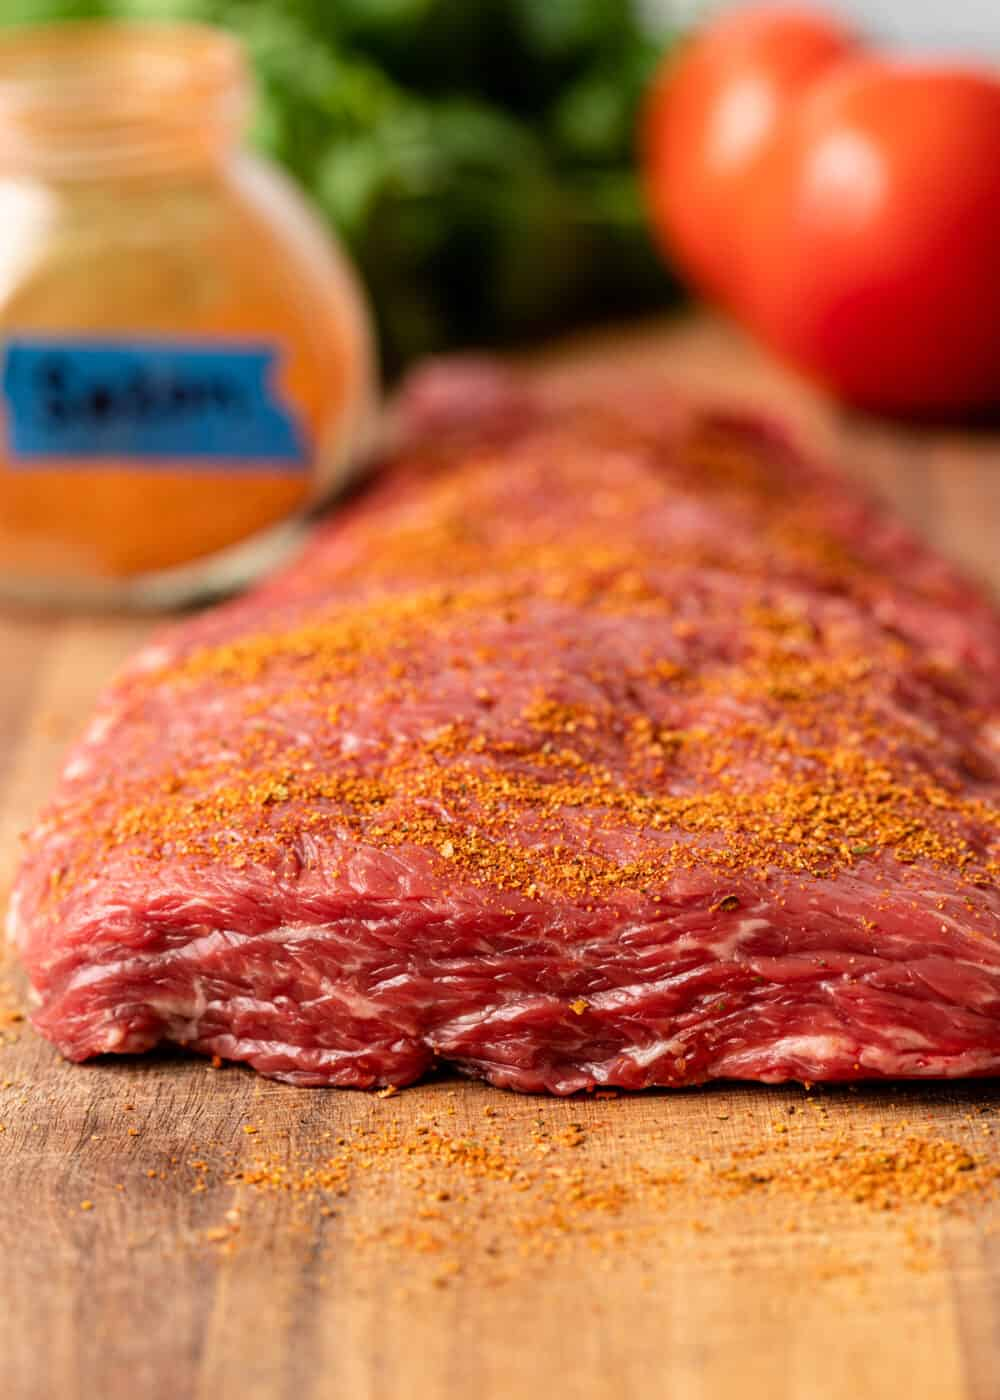 uncooked sirloin flap seasoned with spice rub on butcher block cutting board